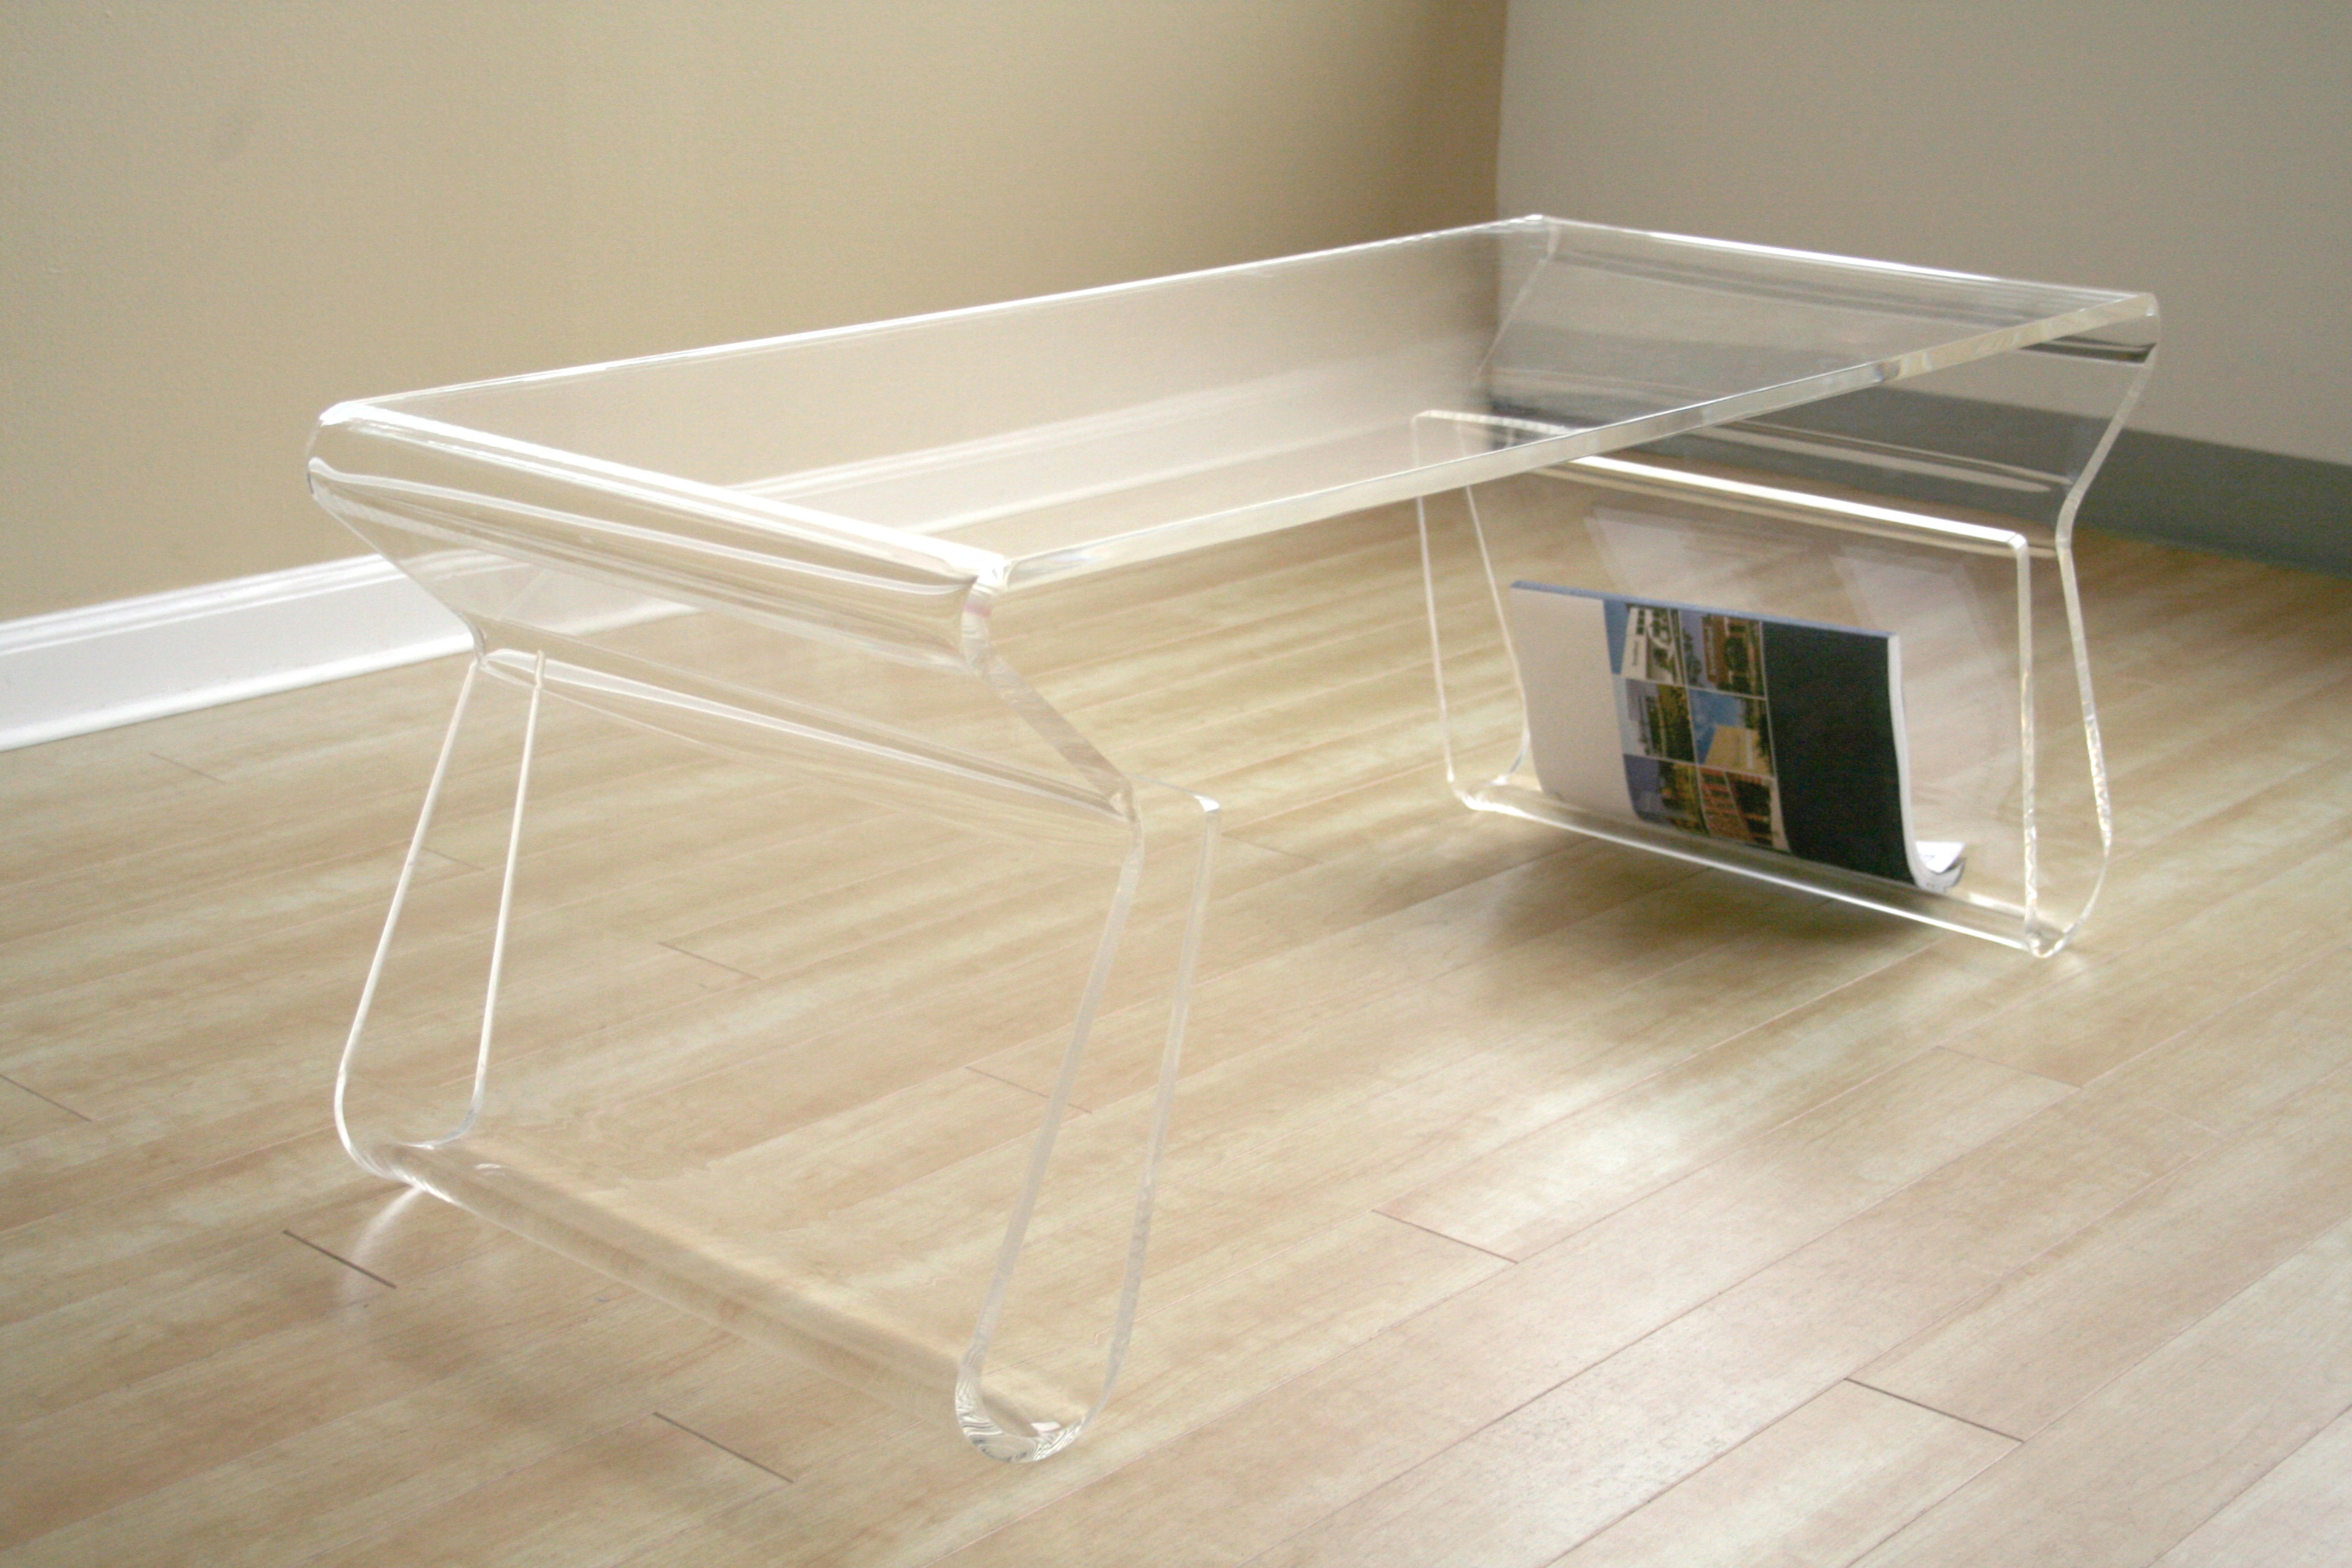 Studio clear acrylic coffee table fay 9948 clear coffee table 0 0 jpg